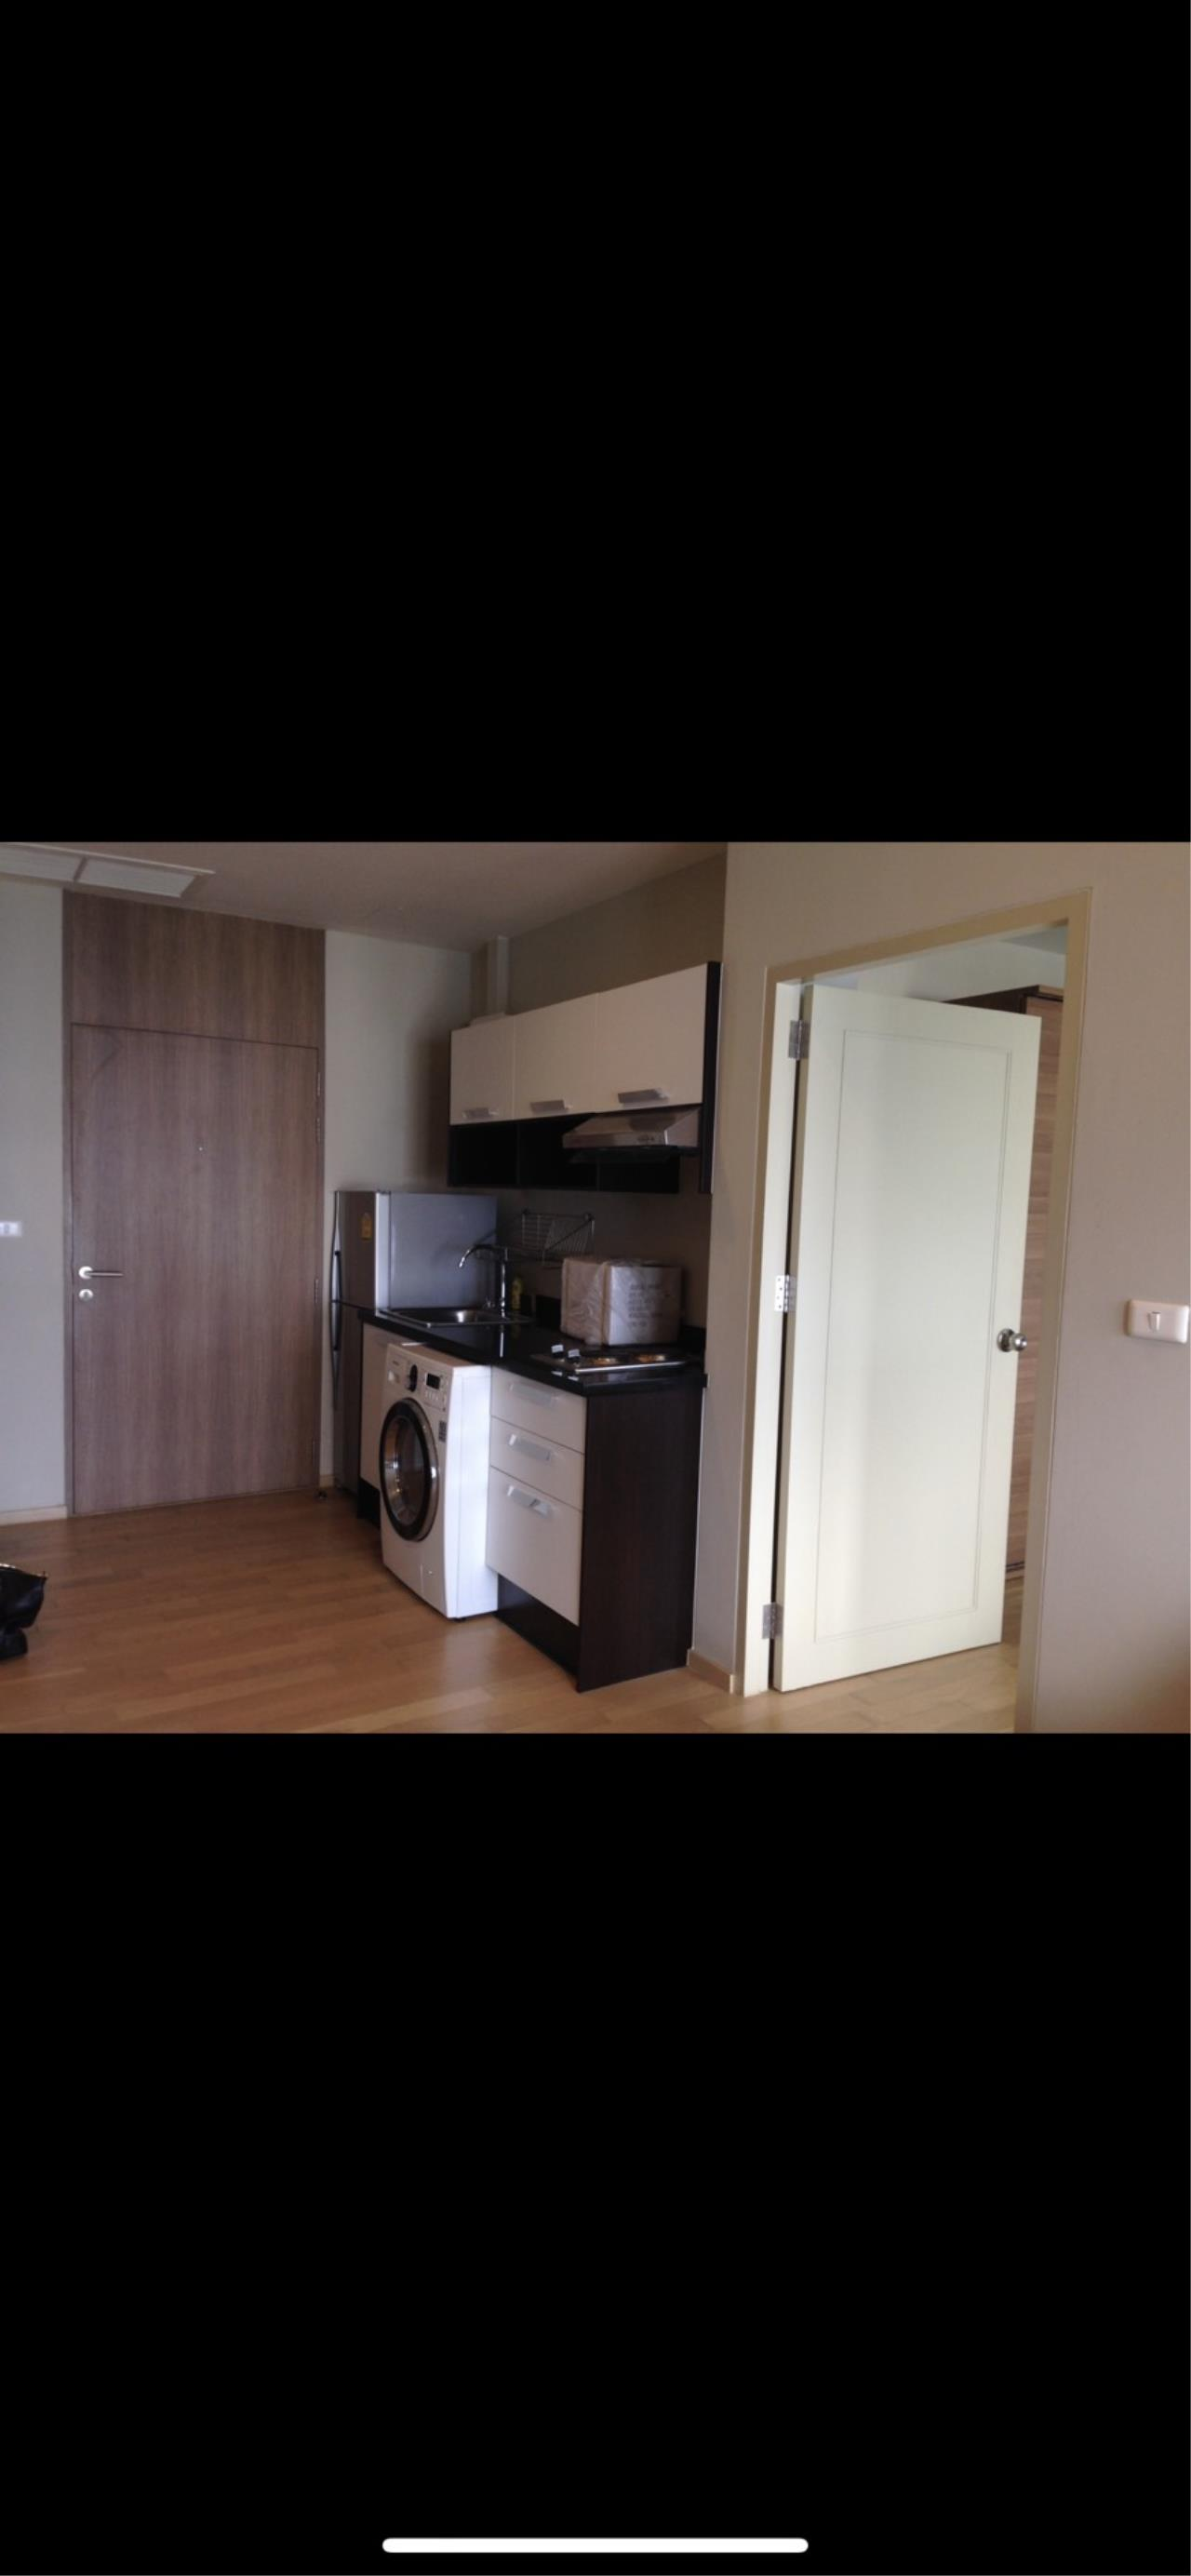 Blueocean property Agency's Condo for Rent at Noble Reveal 4